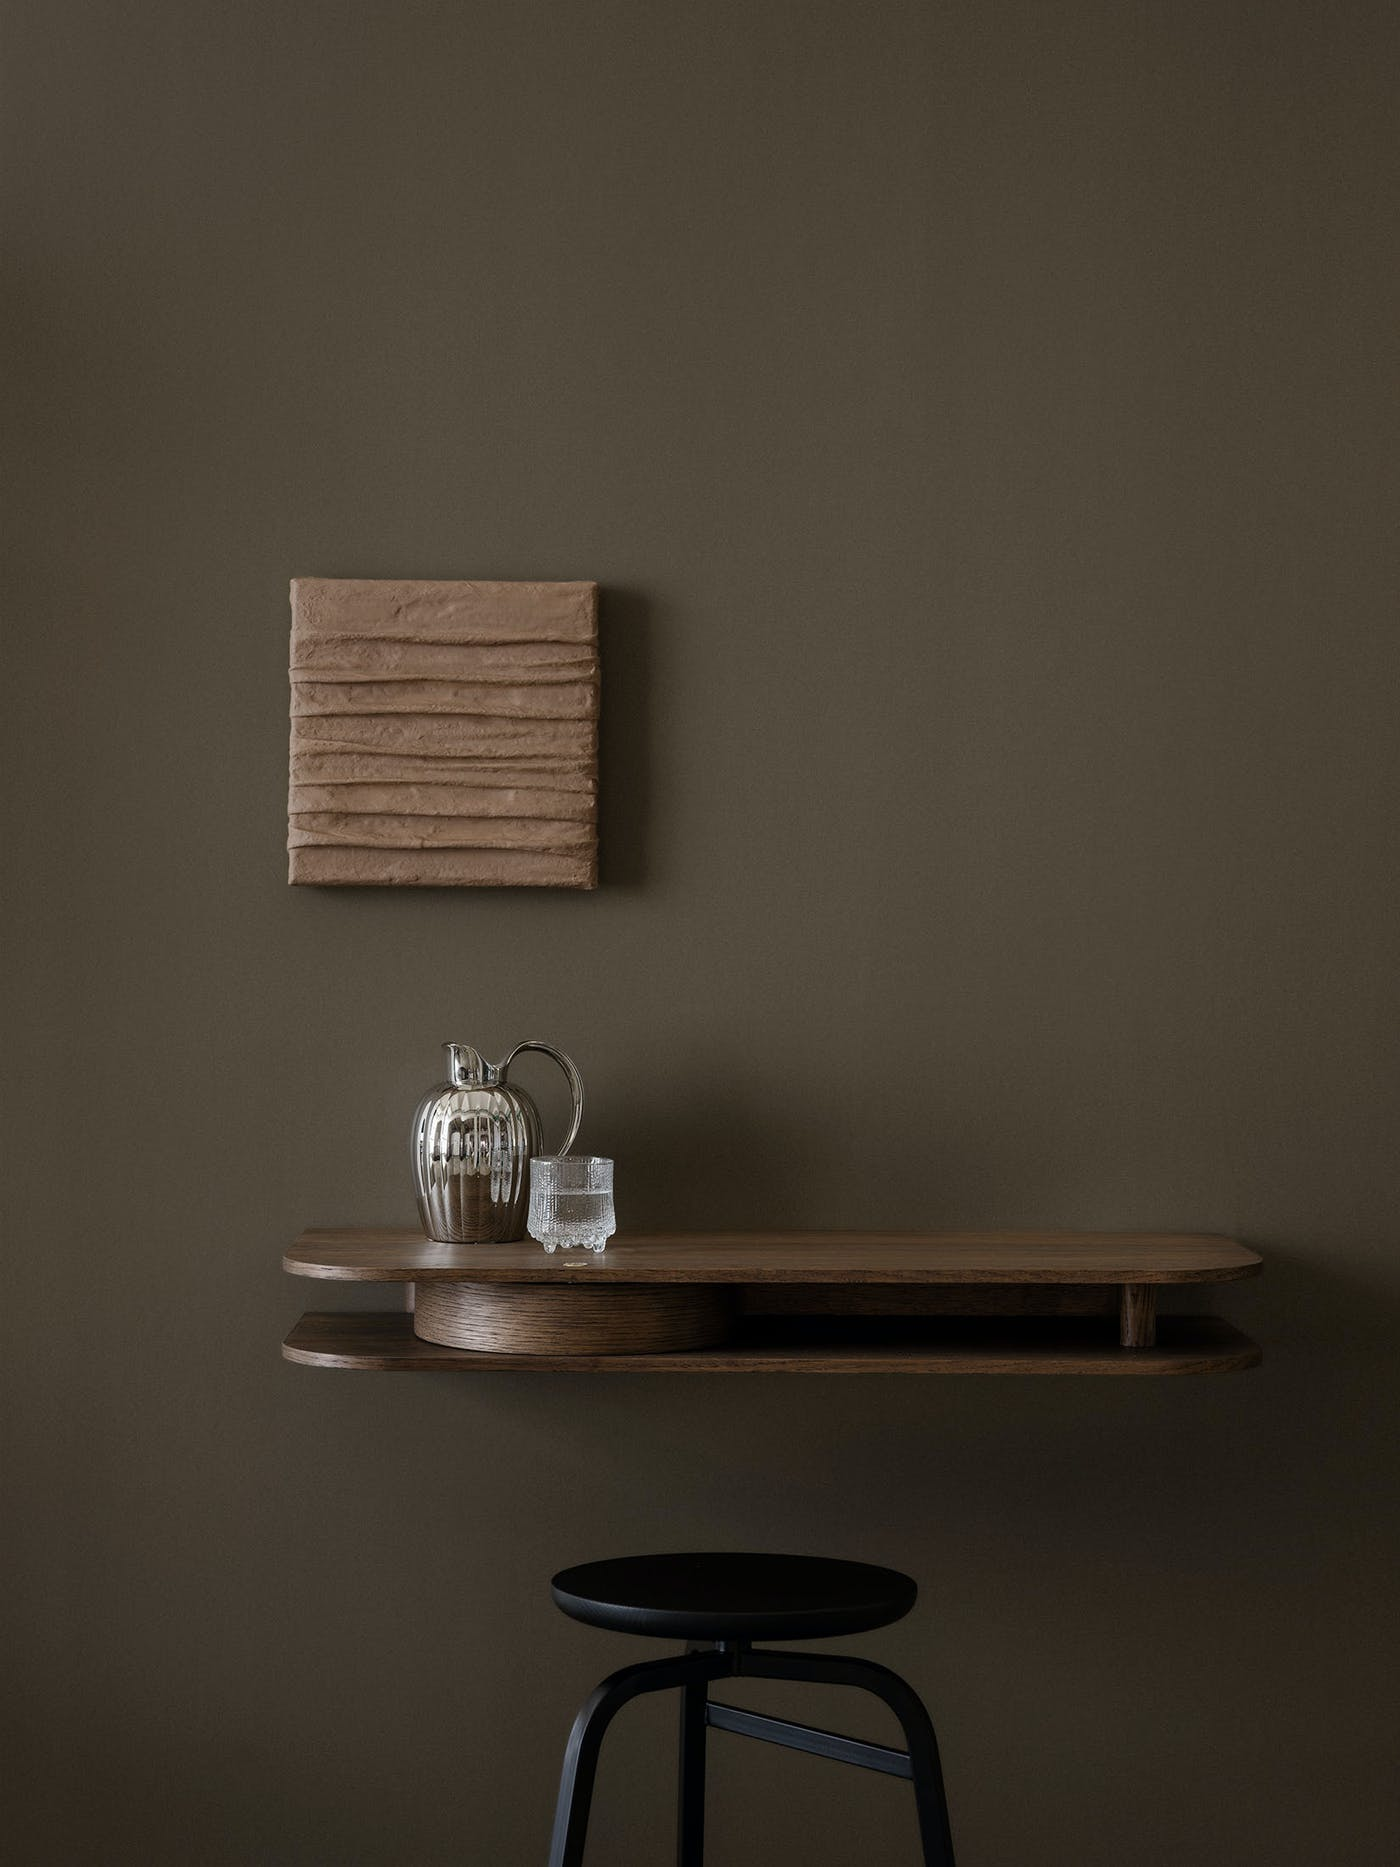 Valet wall console smoked oak front Northern Photo Einar Aslaksen Low res